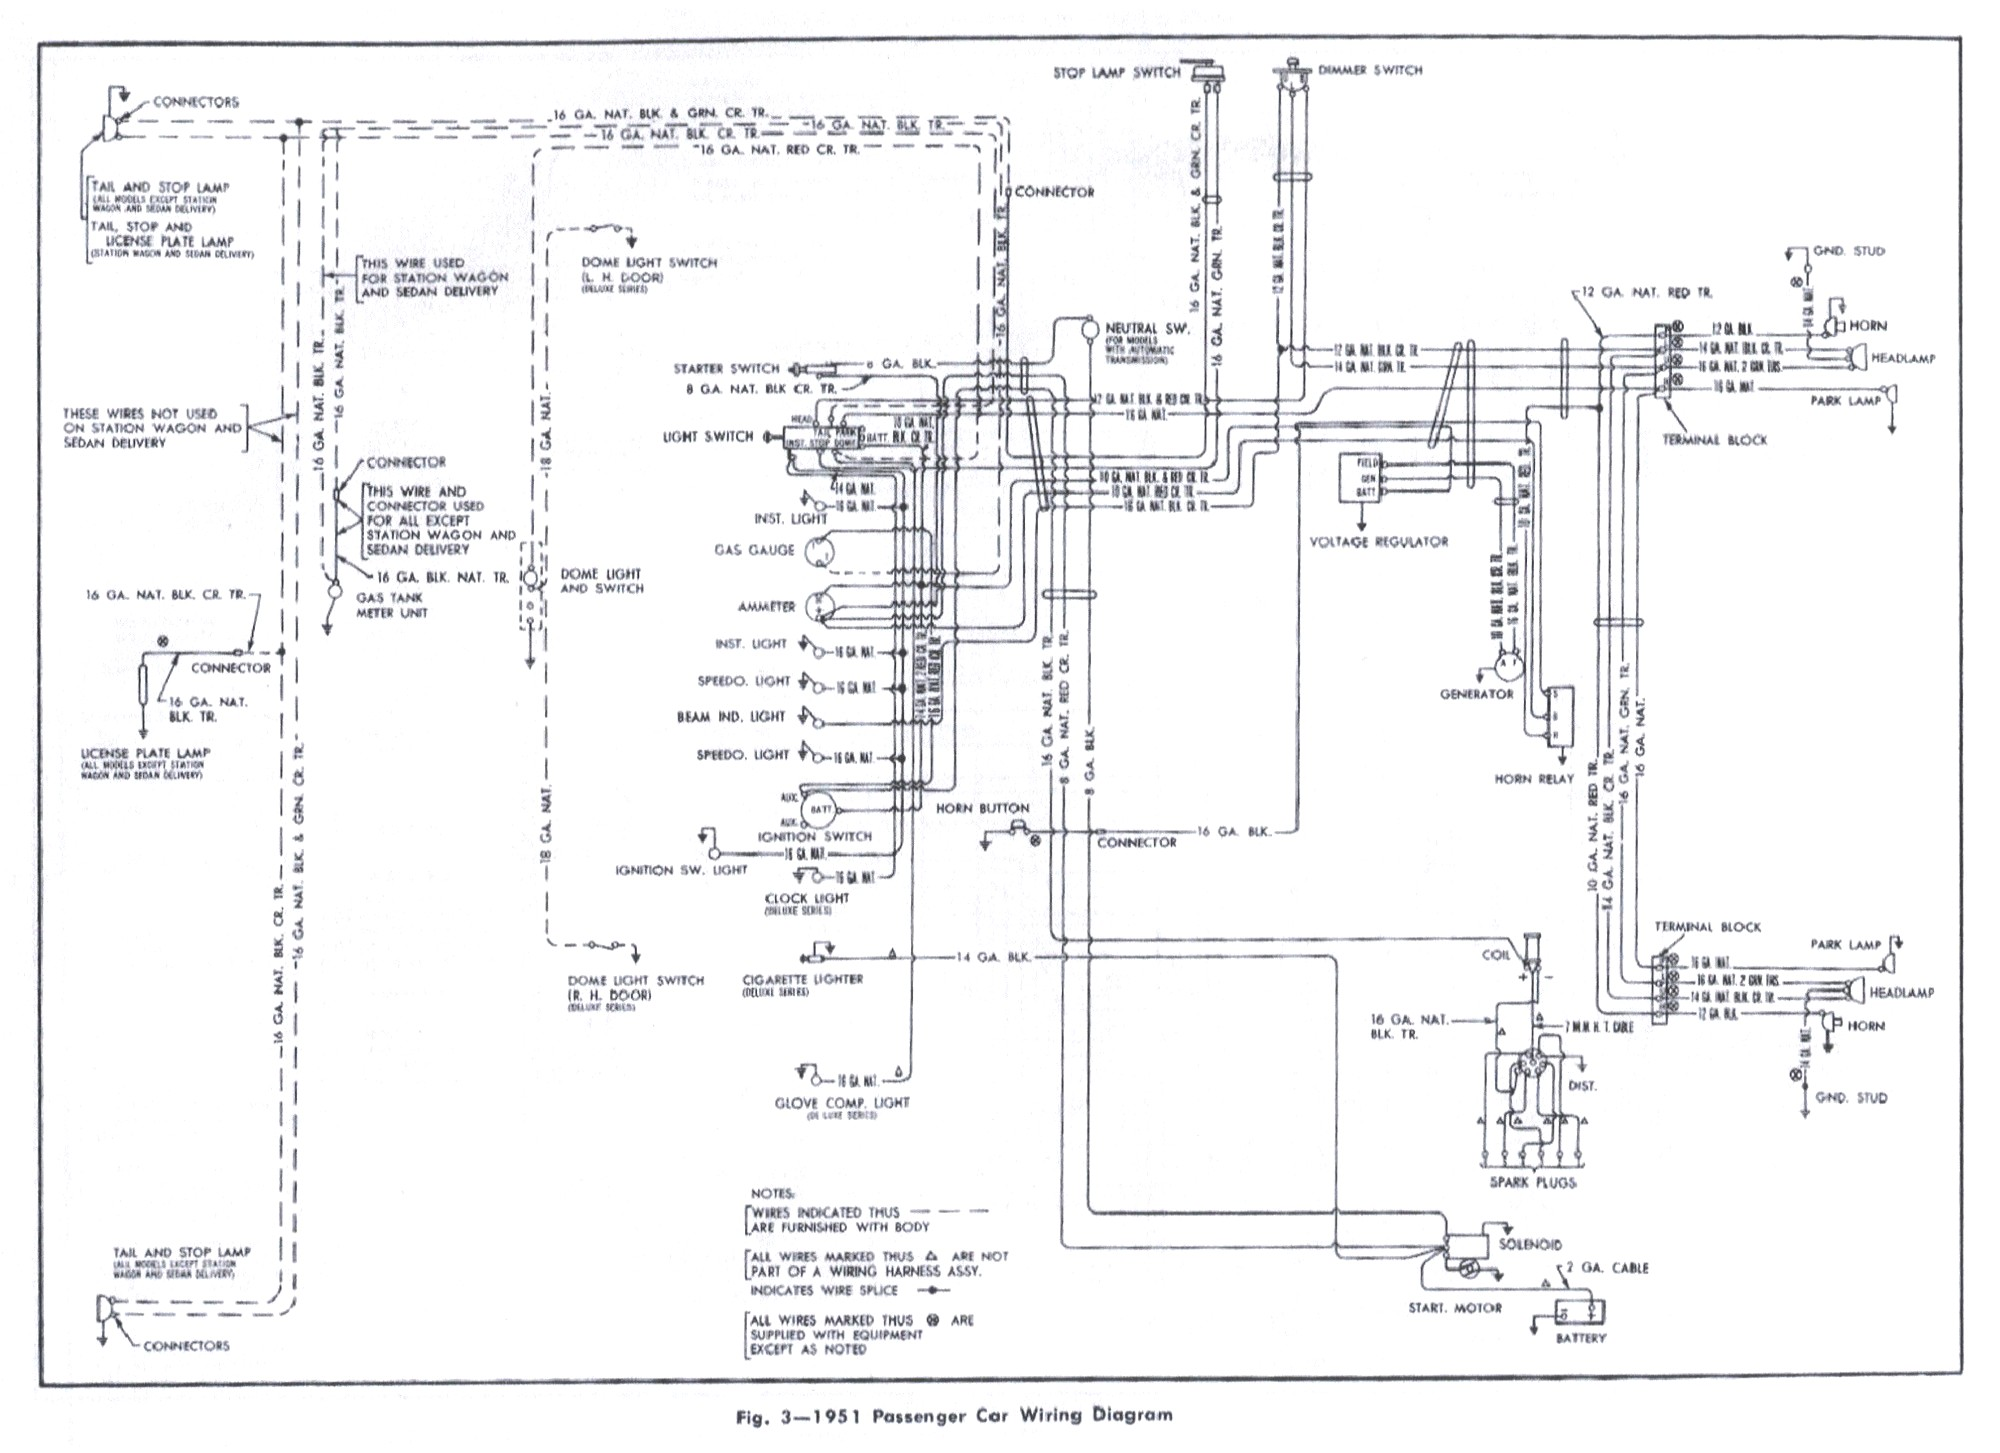 s wiring diagram 2000 s10 wiring diagram wiring diagram and schematic design anyone have a tail light wiring diagram